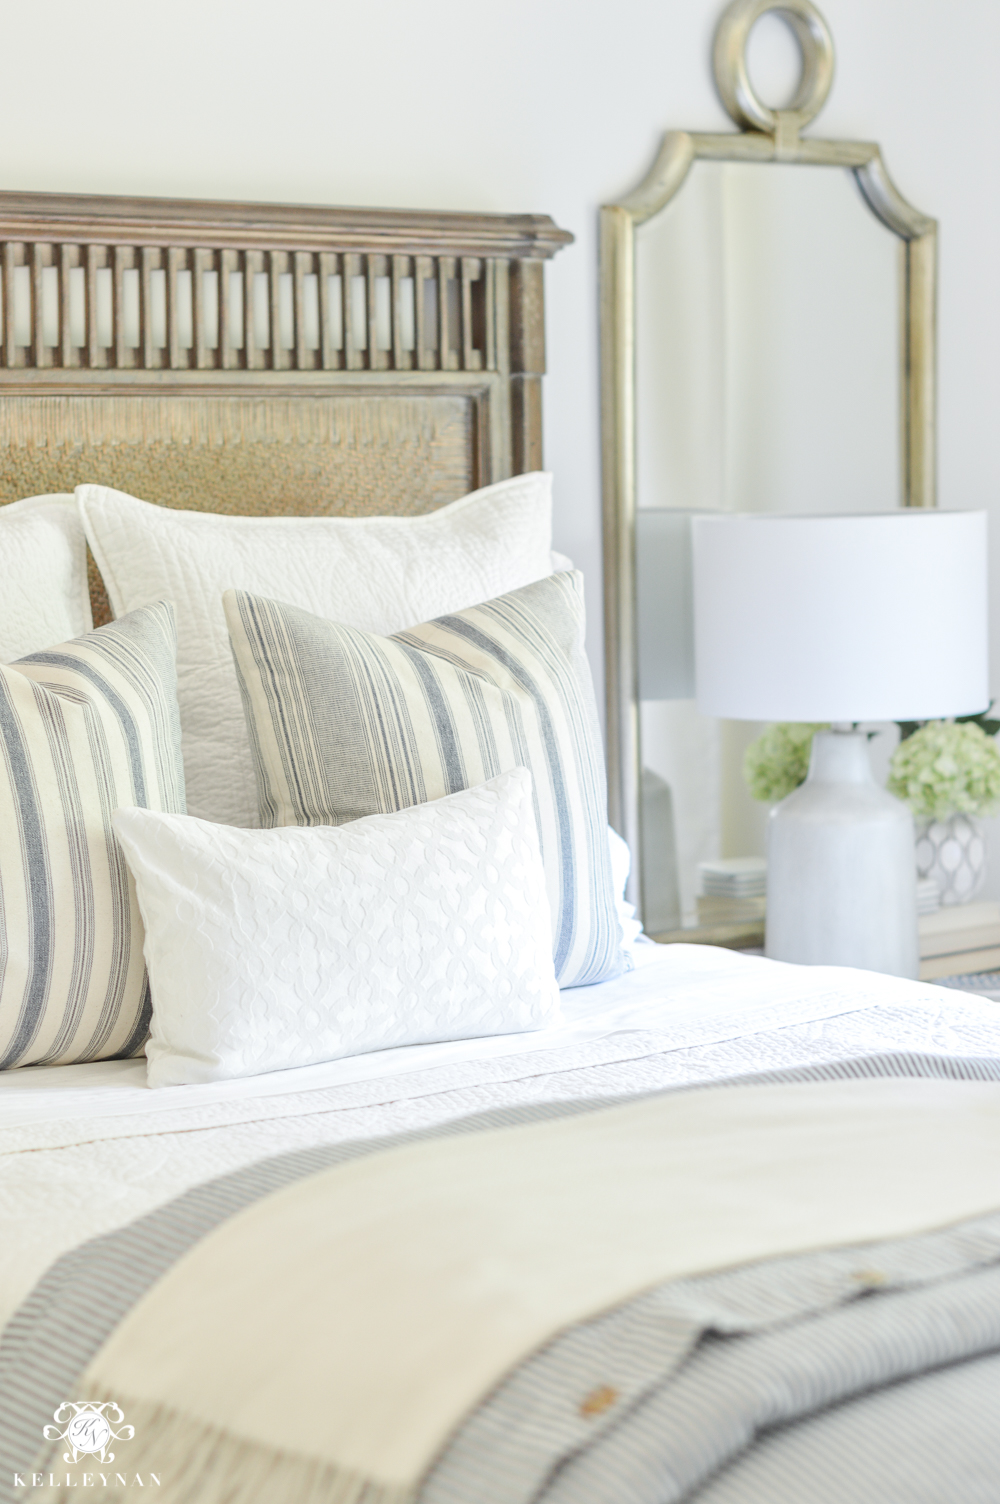 One Room Challenge Blue and White Guest Bedroom Reveal Before and After Makeover- blue and white pottery barn bedding